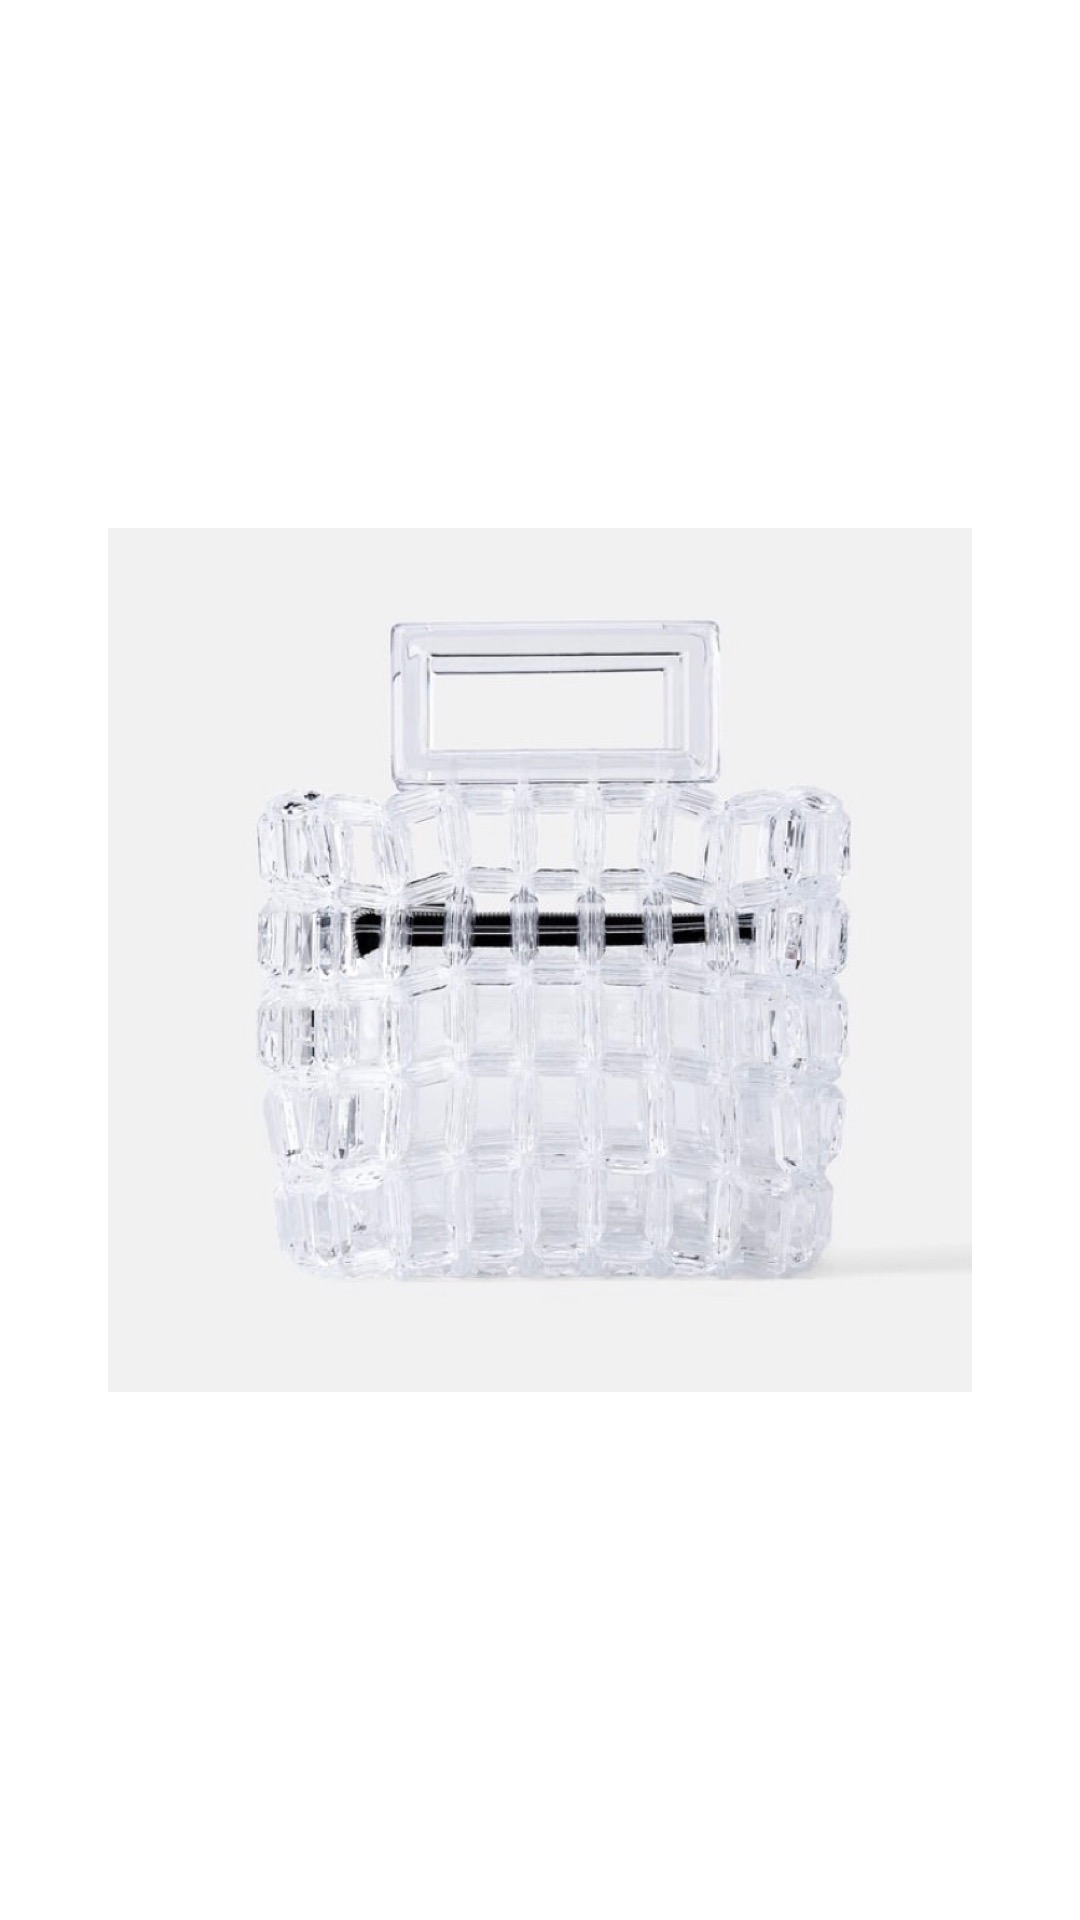 Asos transparent bag.JPG